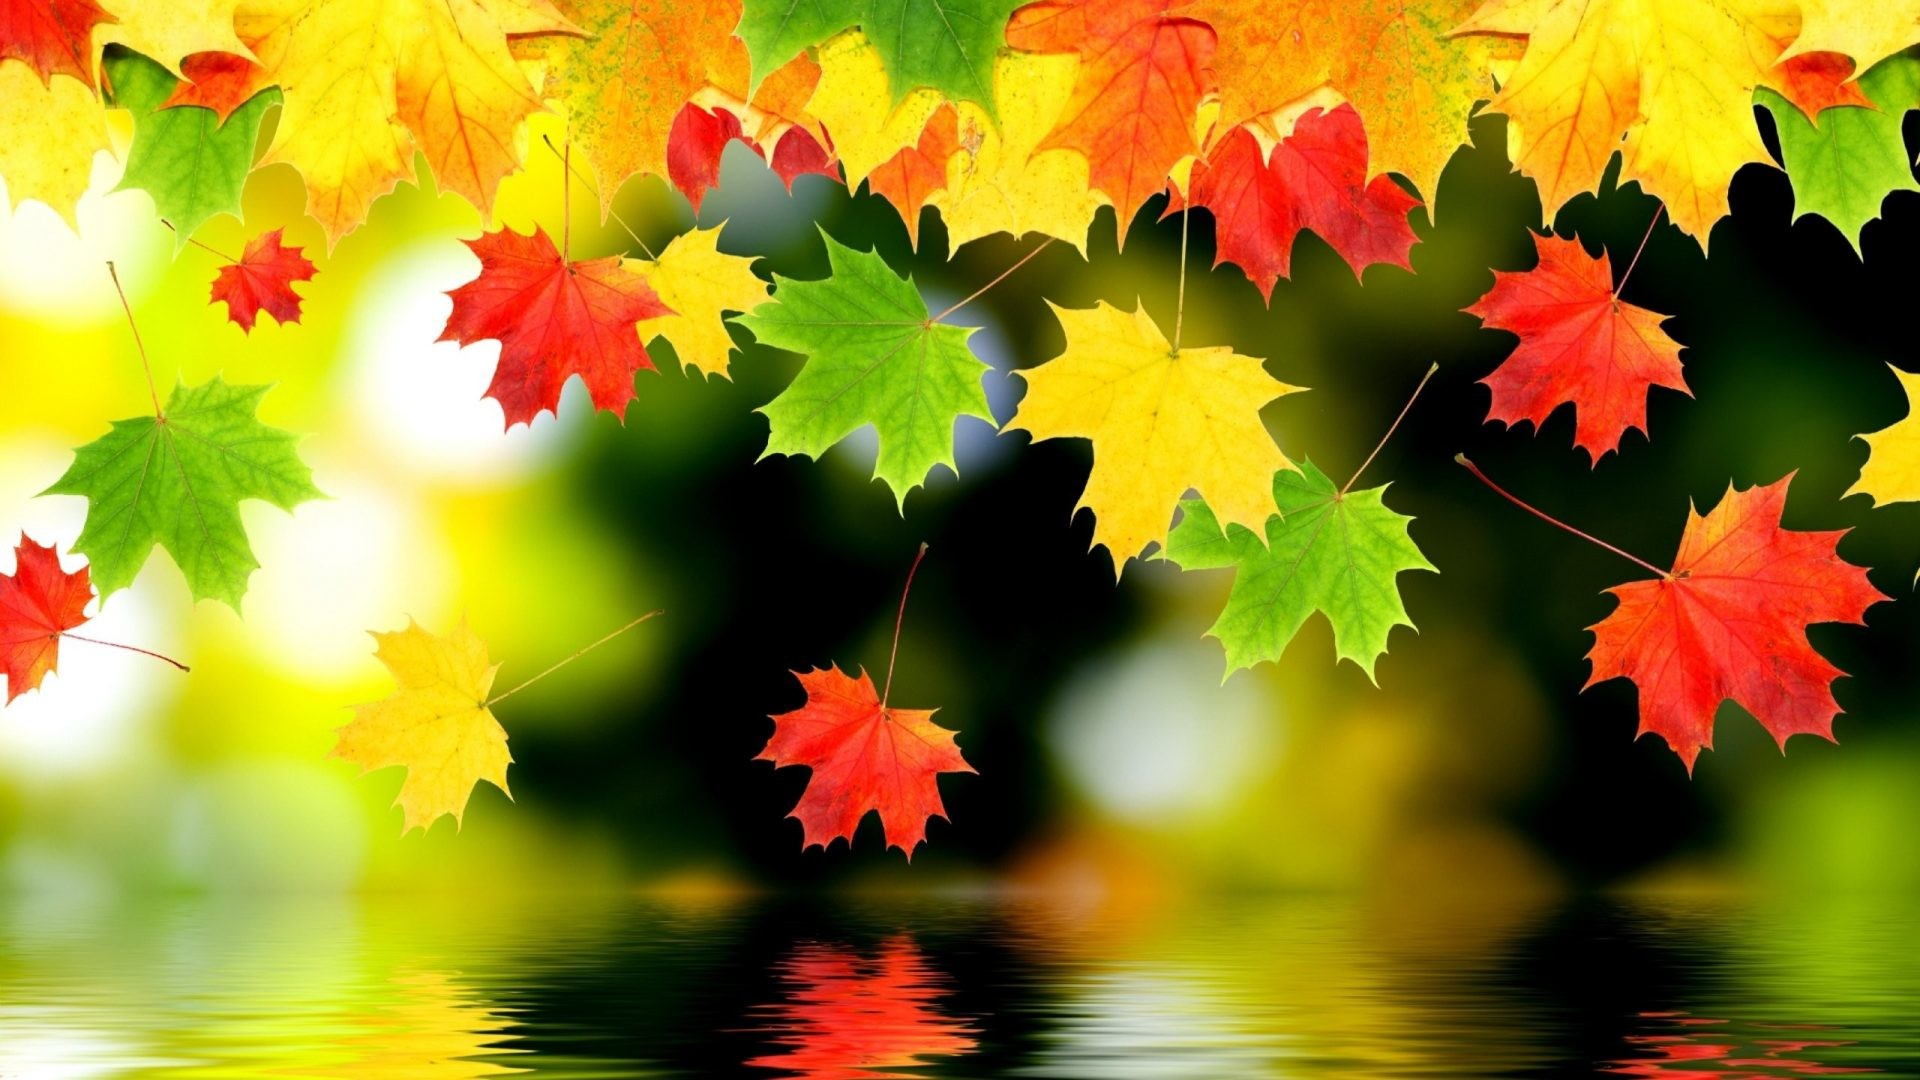 #668800 Color – Foliage Autumn Water Fall Nature Backgrounds Iphone 6 for  HD 16: